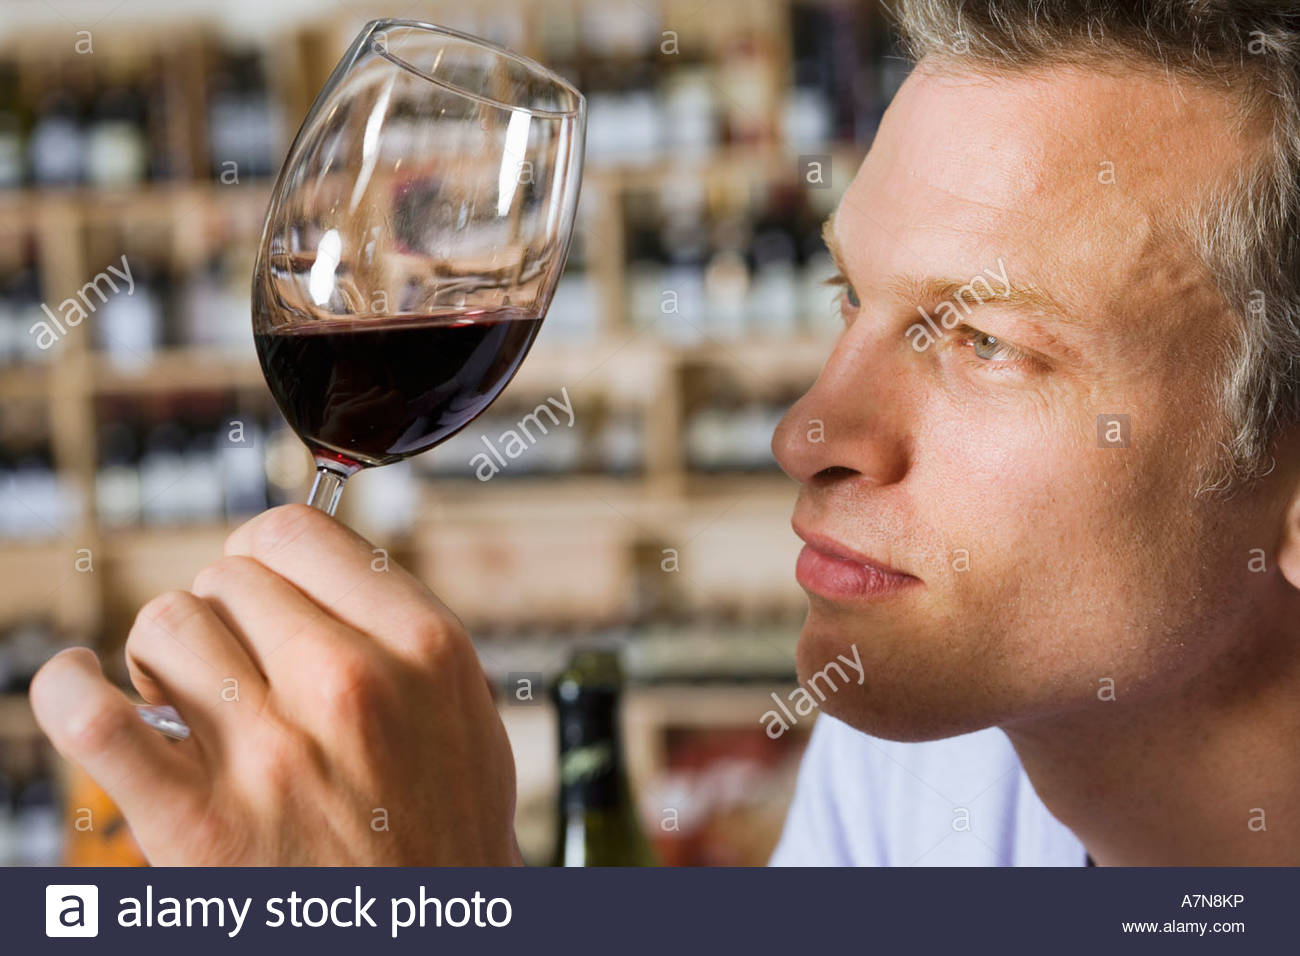 Man examining glass of red wine in off licence side view close up focus on foreground - Stock Image